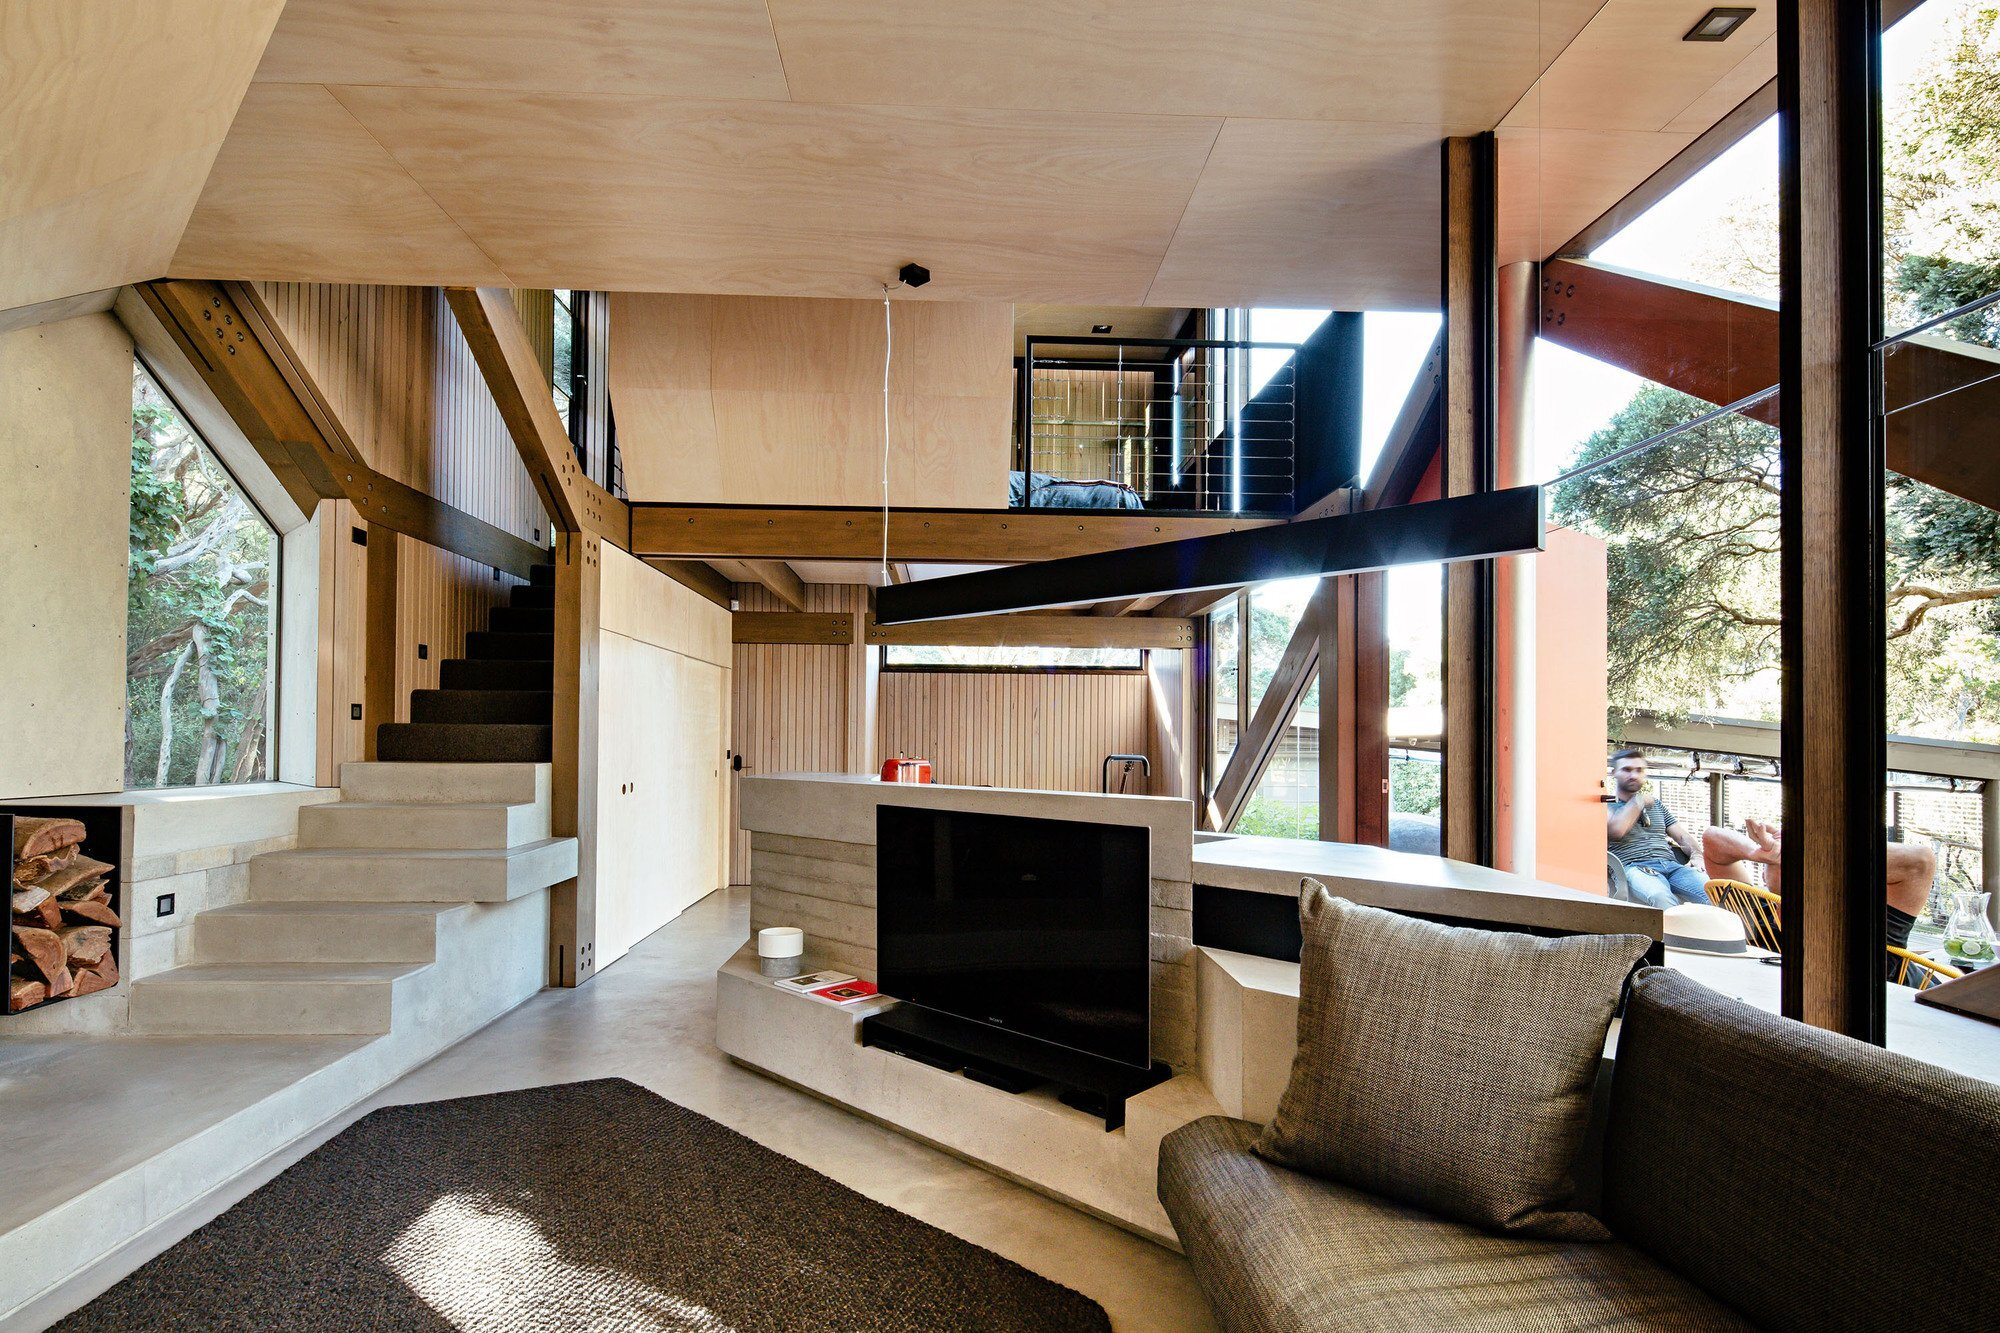 Cabin 2 - Small House - Maddison Architects - Australia - Living Area - Humble Homes